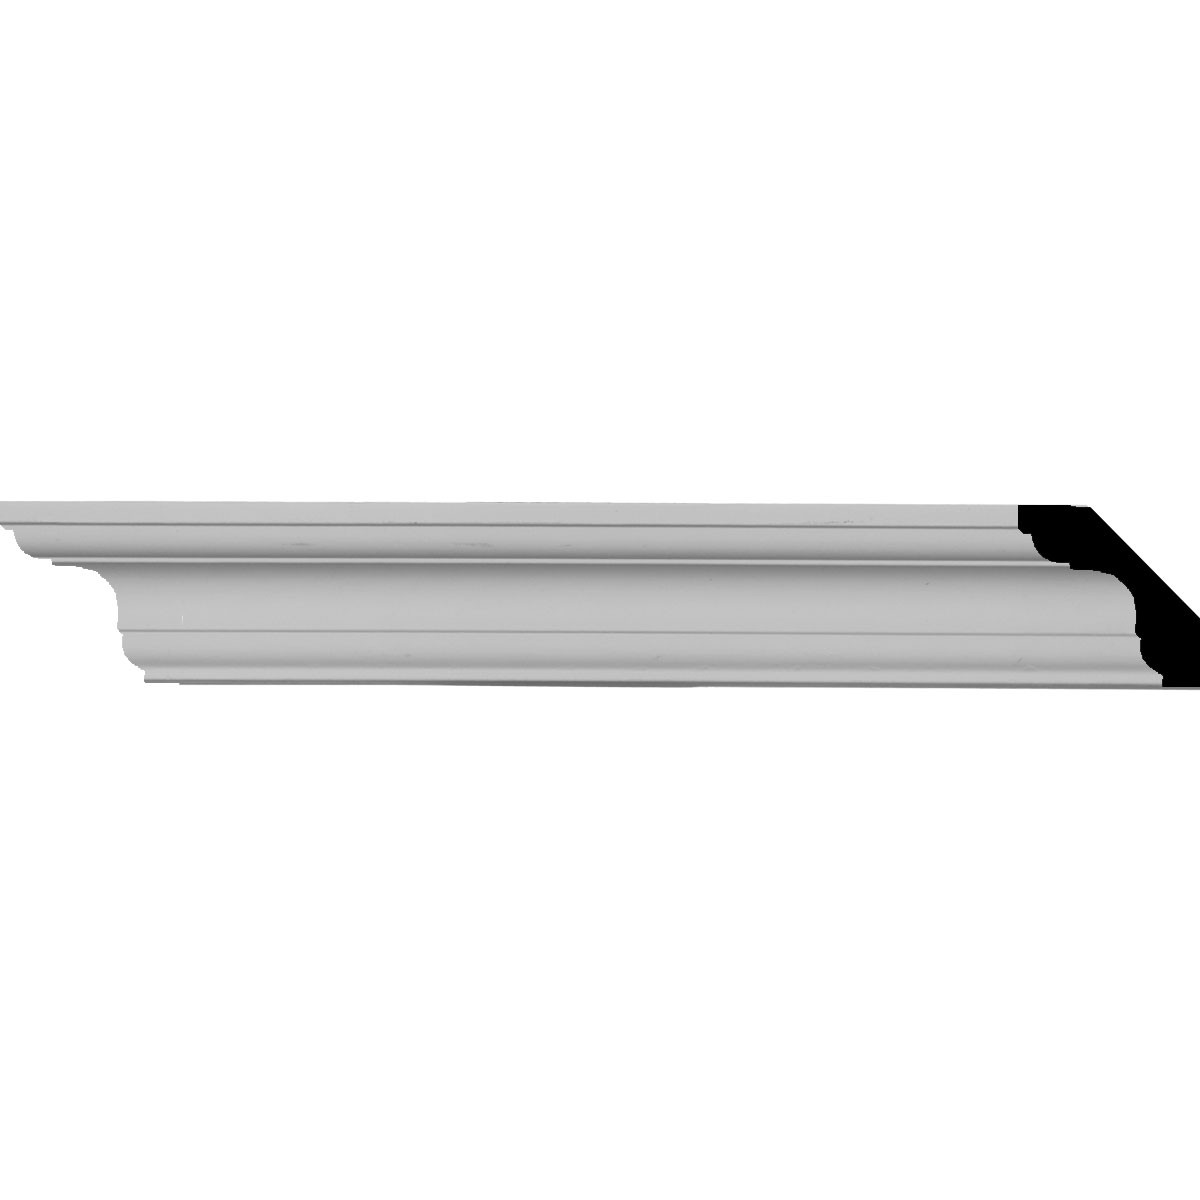 """EM-MLD01X01X02ED - 1 3/4""""H x 1 3/4""""P x 2 1/2""""F x 94 1/2""""L Edinburgh Traditional Smooth Crown Moulding"""